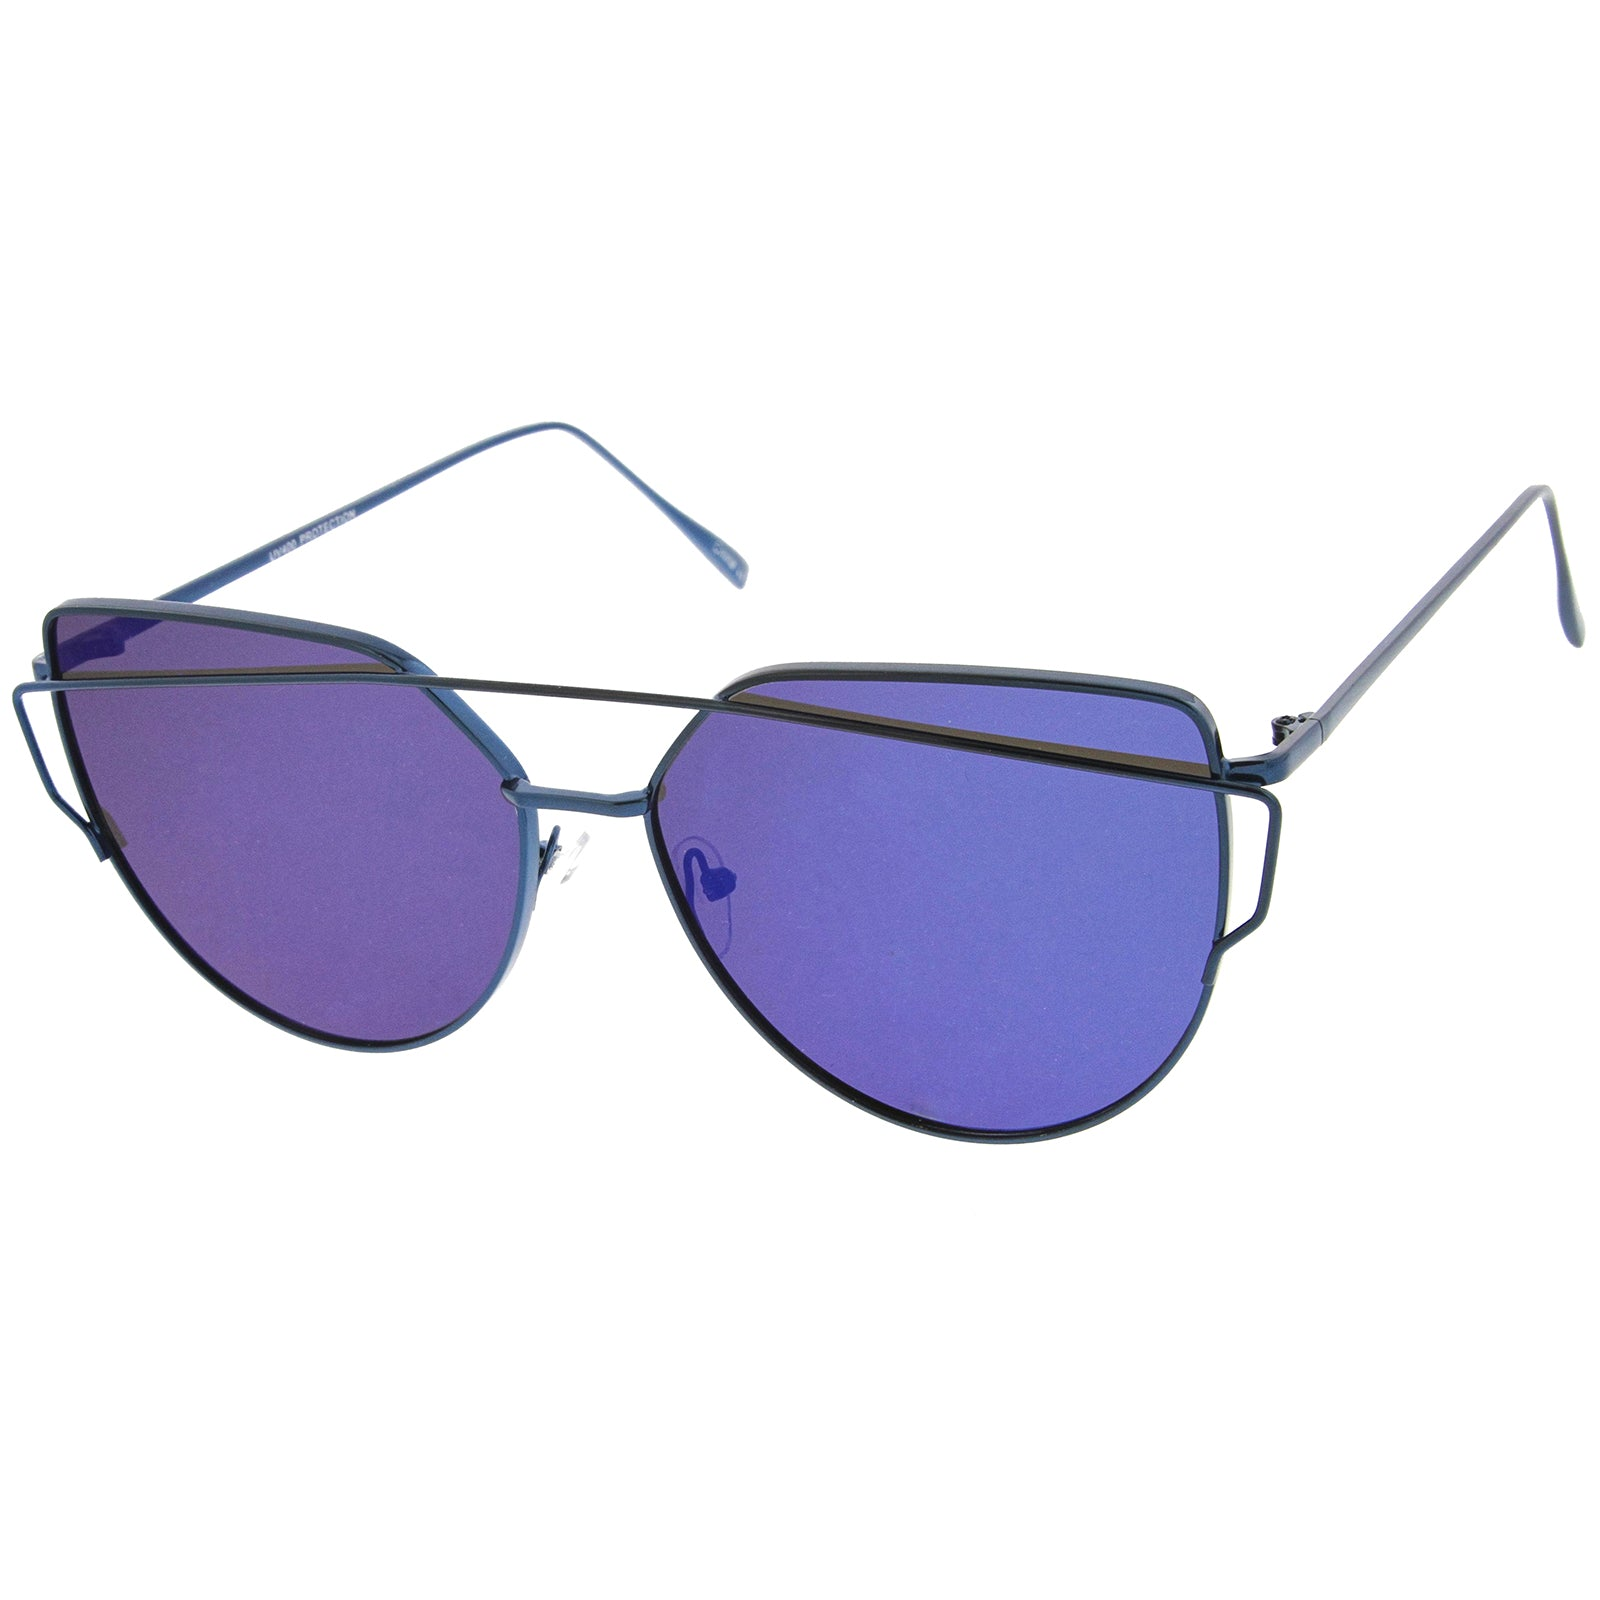 Oversize Metal Frame Thin Temple Color Mirror Flat Lens Aviator Sunglasses 62mm - sunglass.la - 10